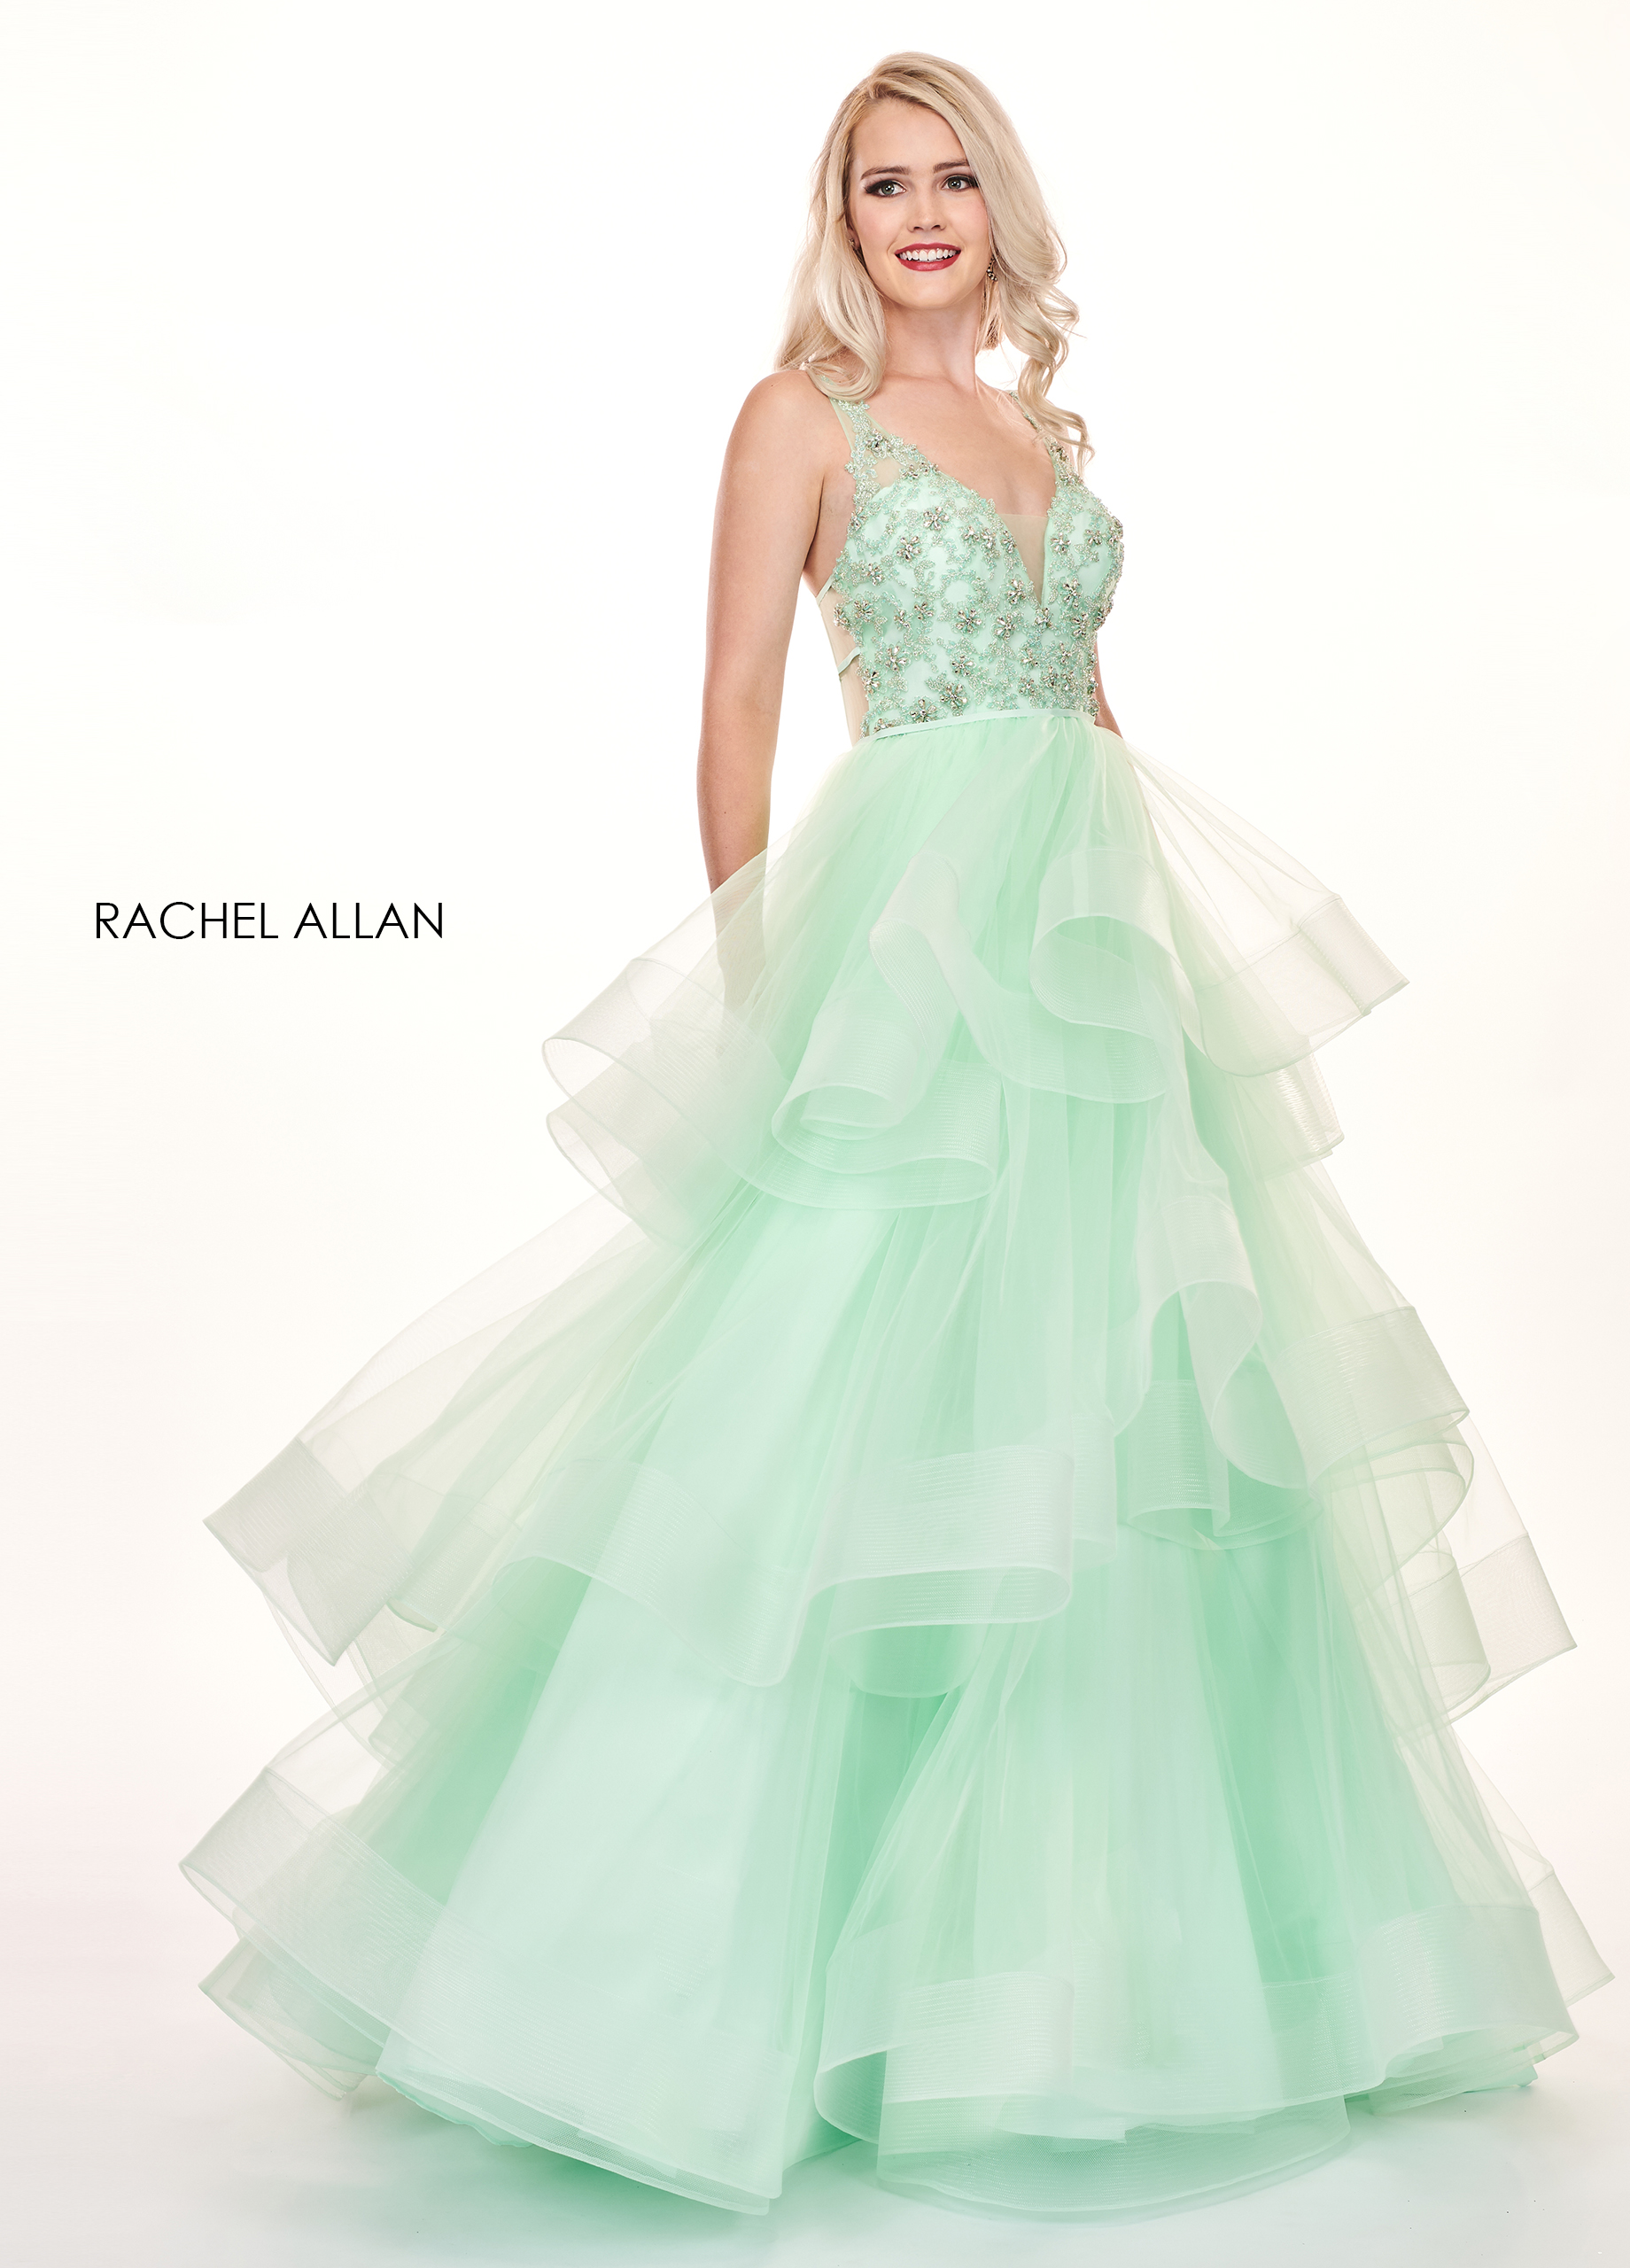 V-Neck Ball Gowns Prom Dresses in Mint Color